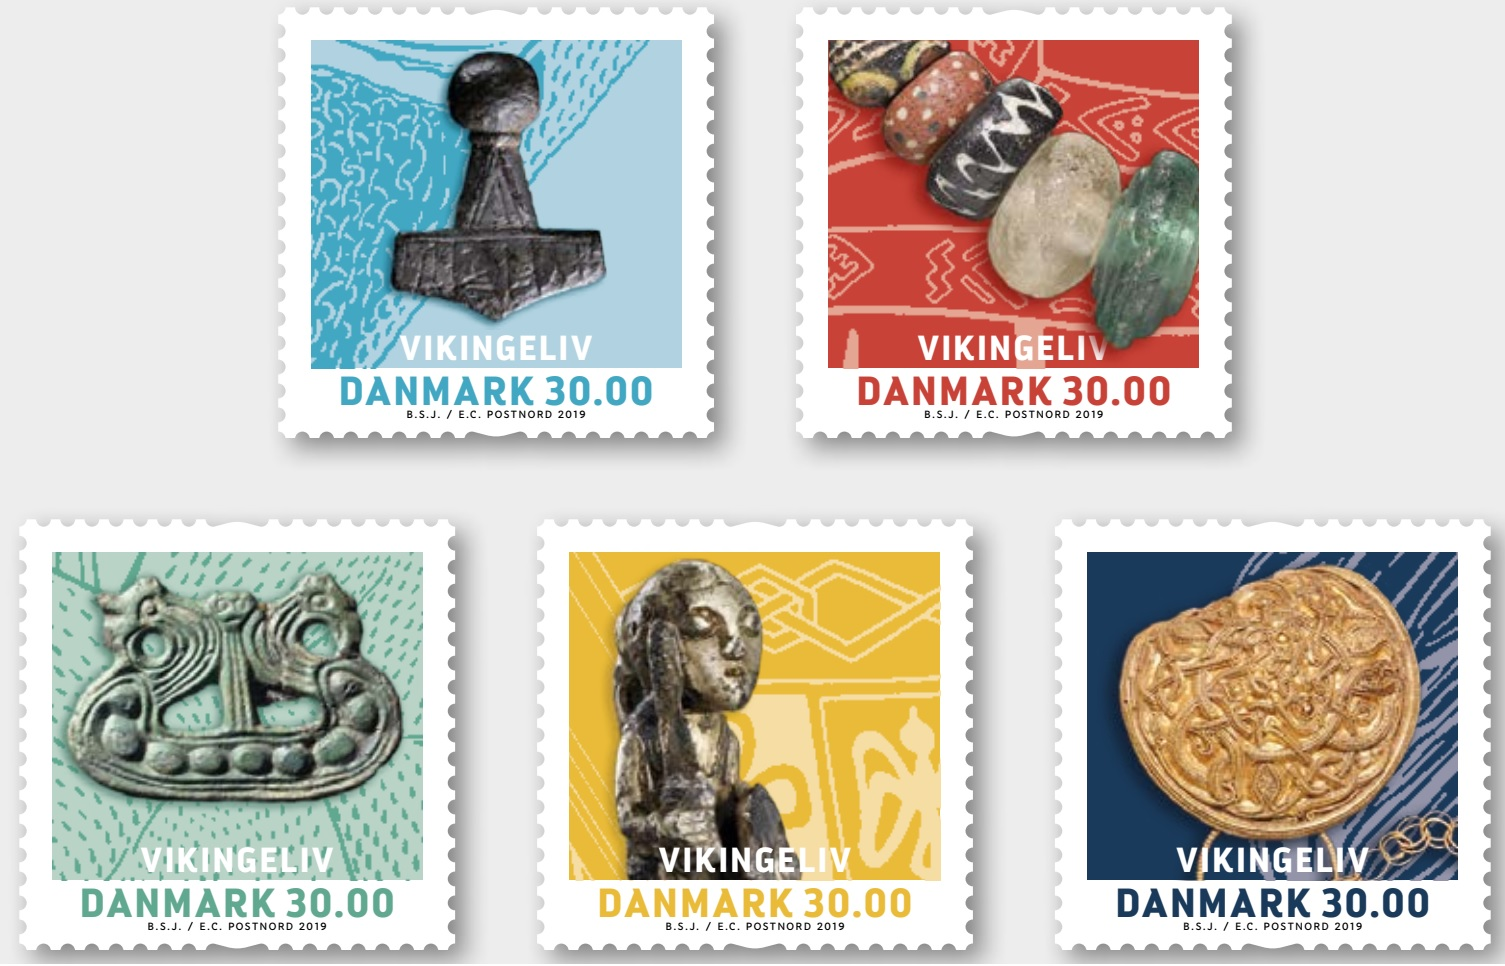 Denmark - Life of Vikings (January 2, 2019) - screenshot from Postnord press release PDF